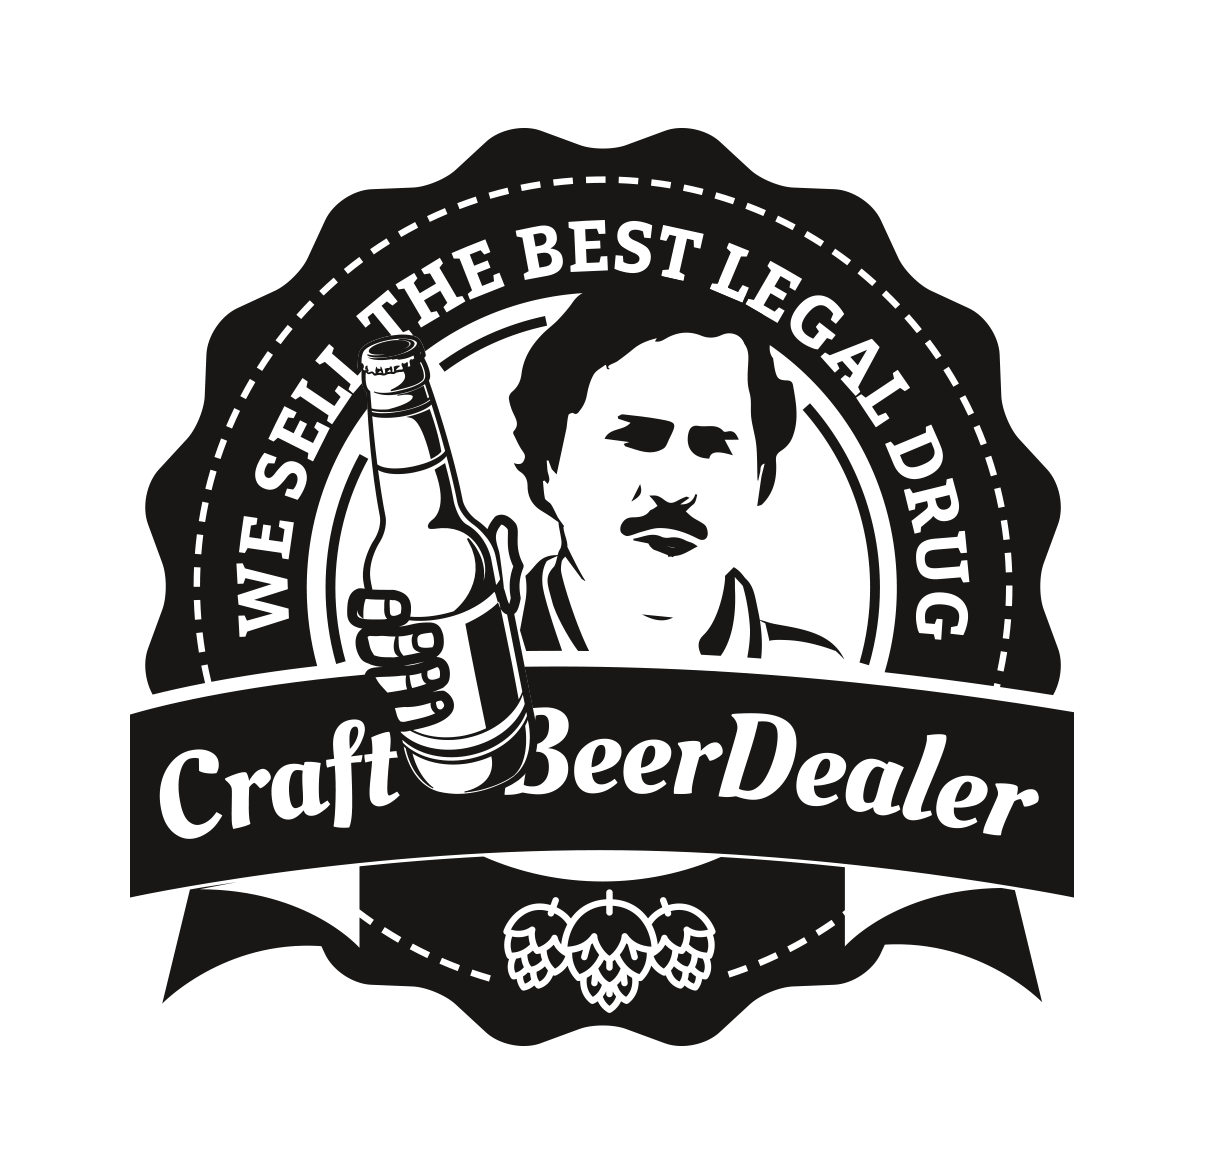 Craft Beer Online Shop by Craftbeer Dealer